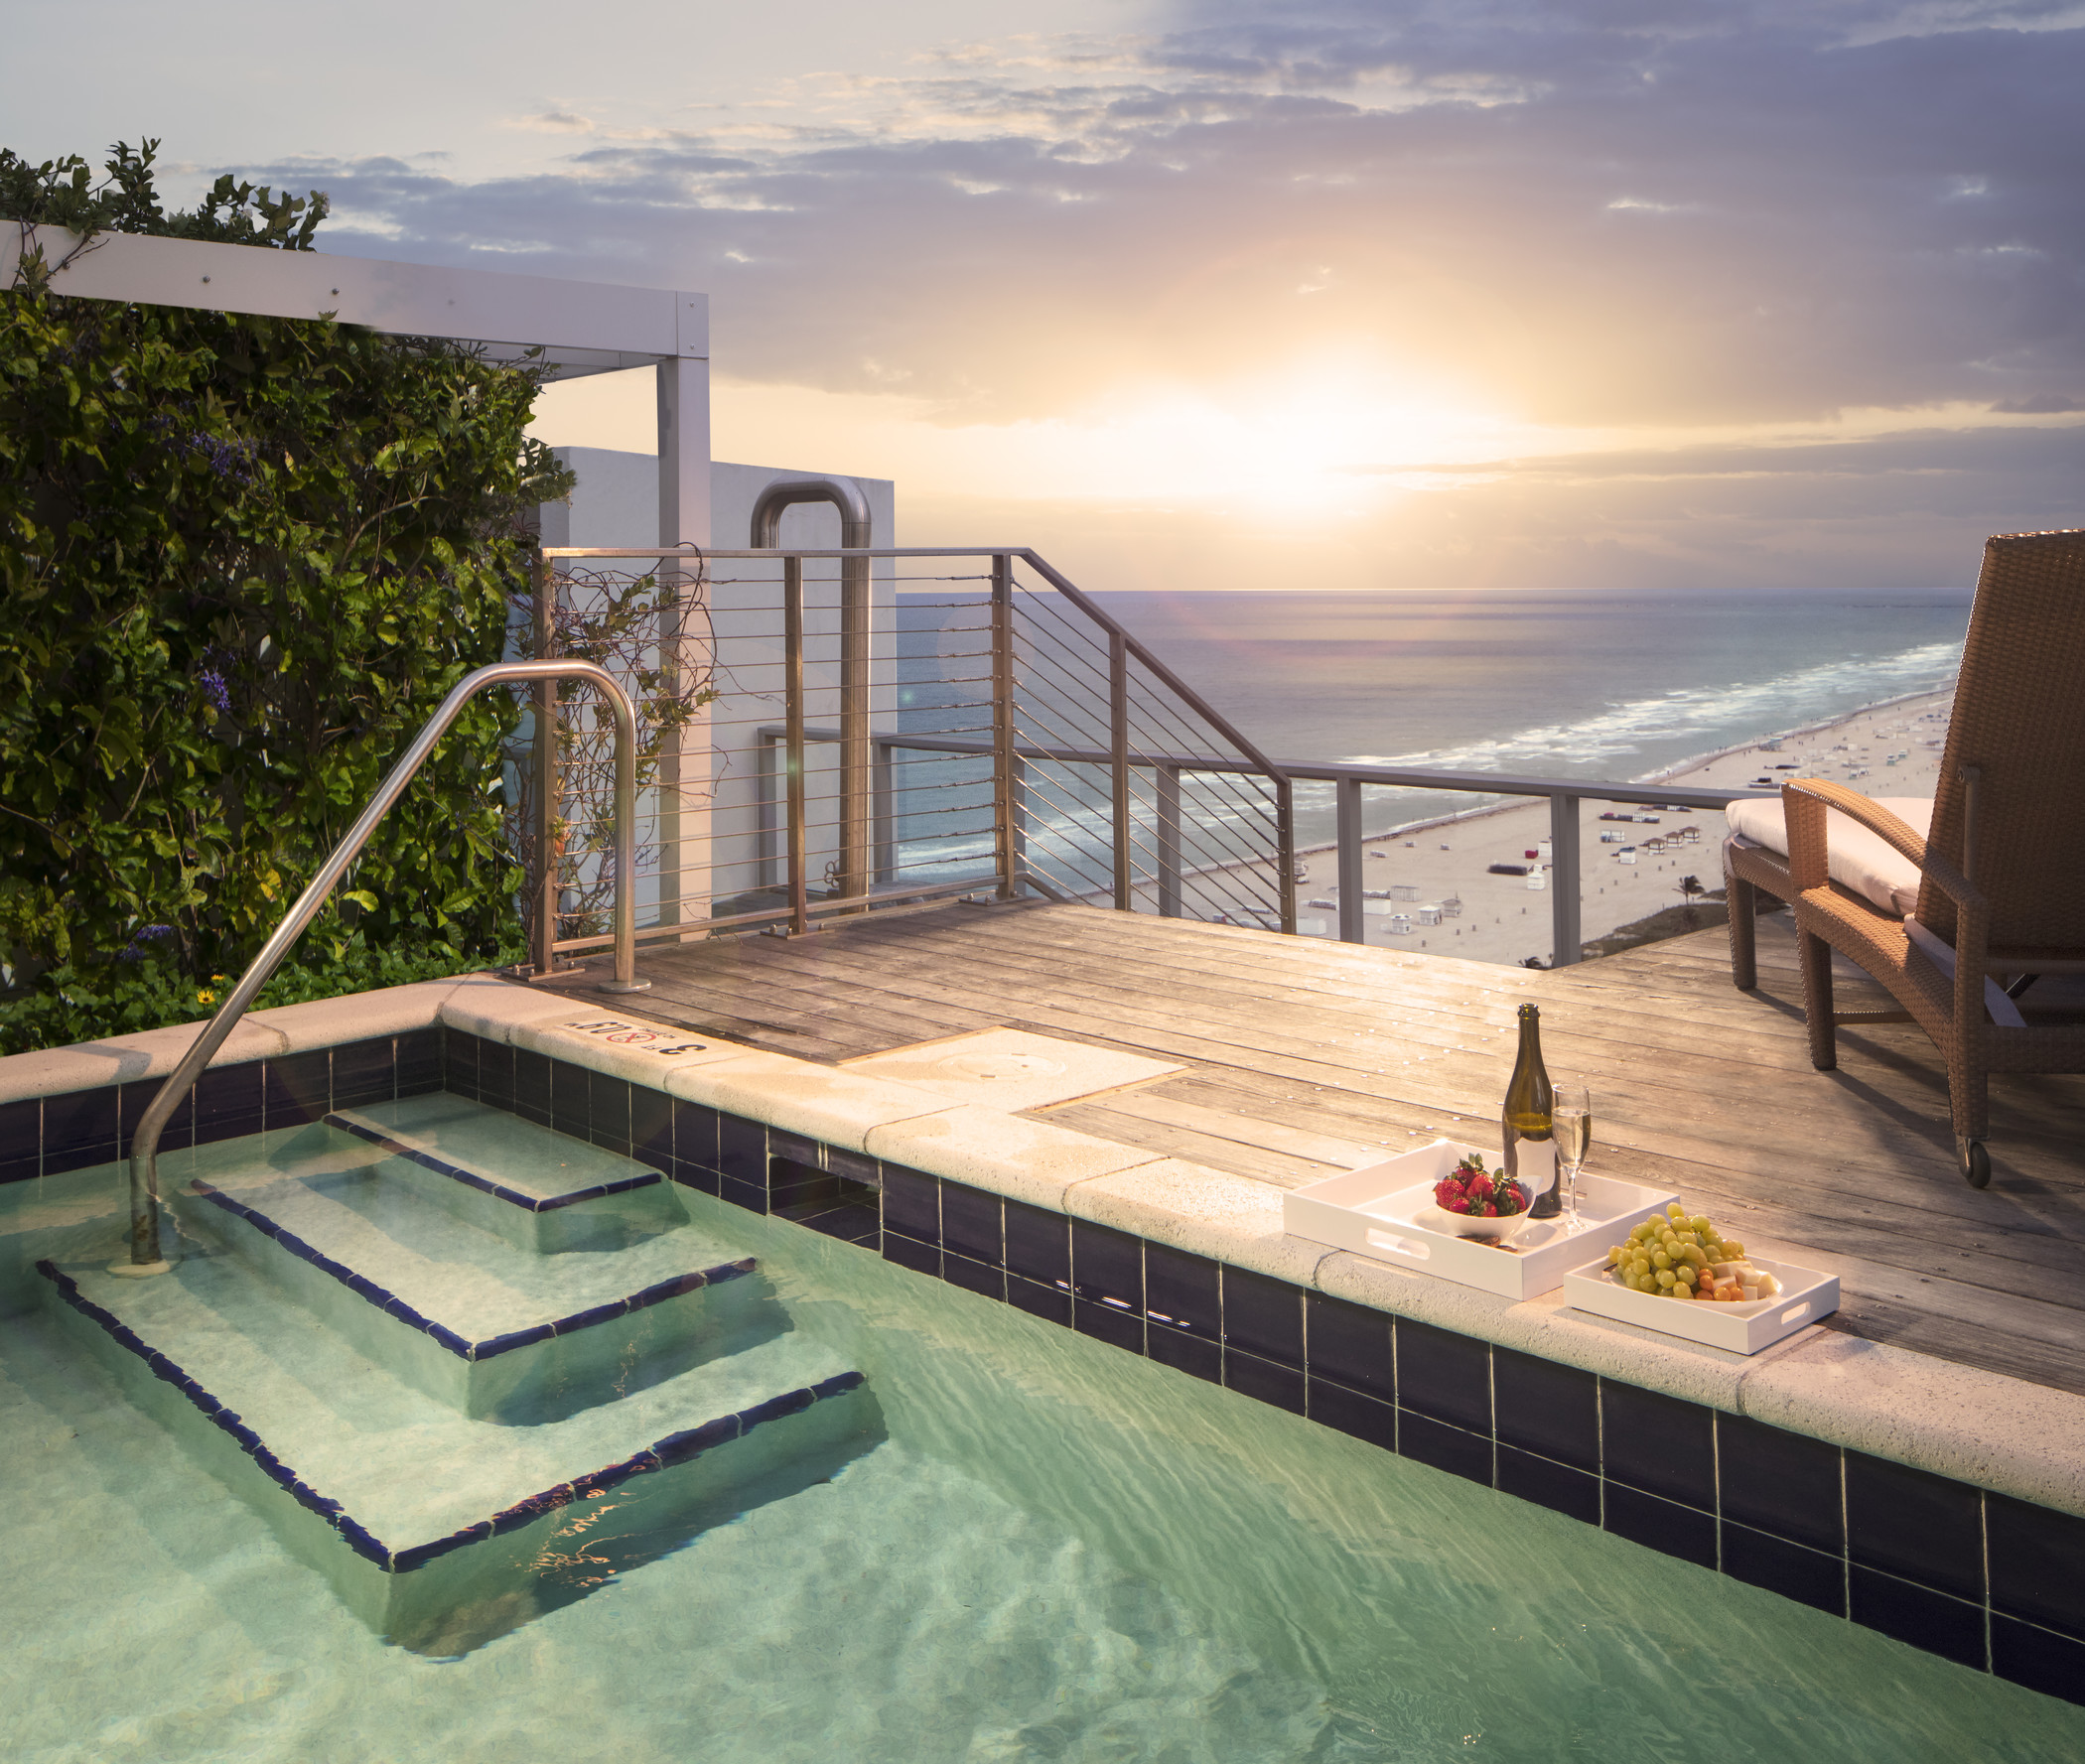 Rootop pool on balcony with ocean view